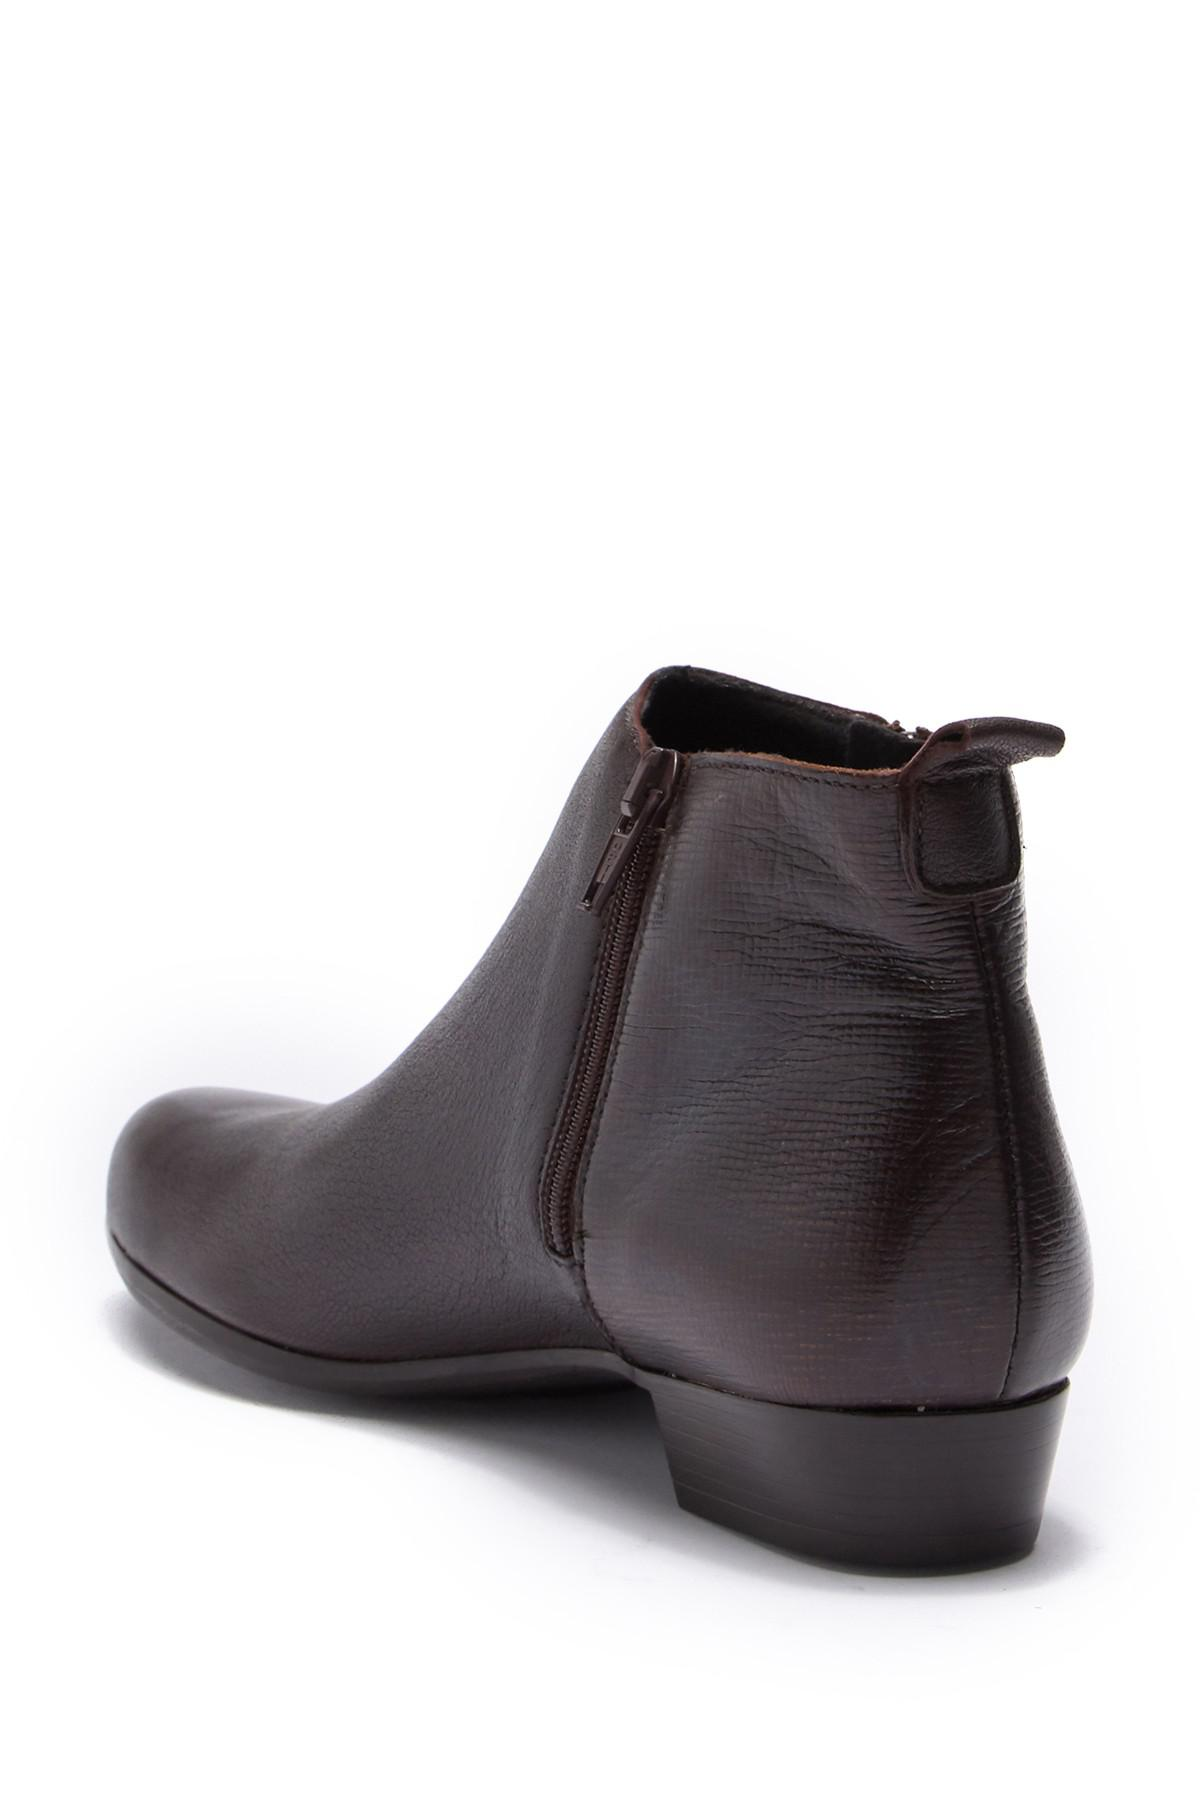 b7575fdac48 Lyst - Munro Lexi Boot - Multiple Widths Available in Brown